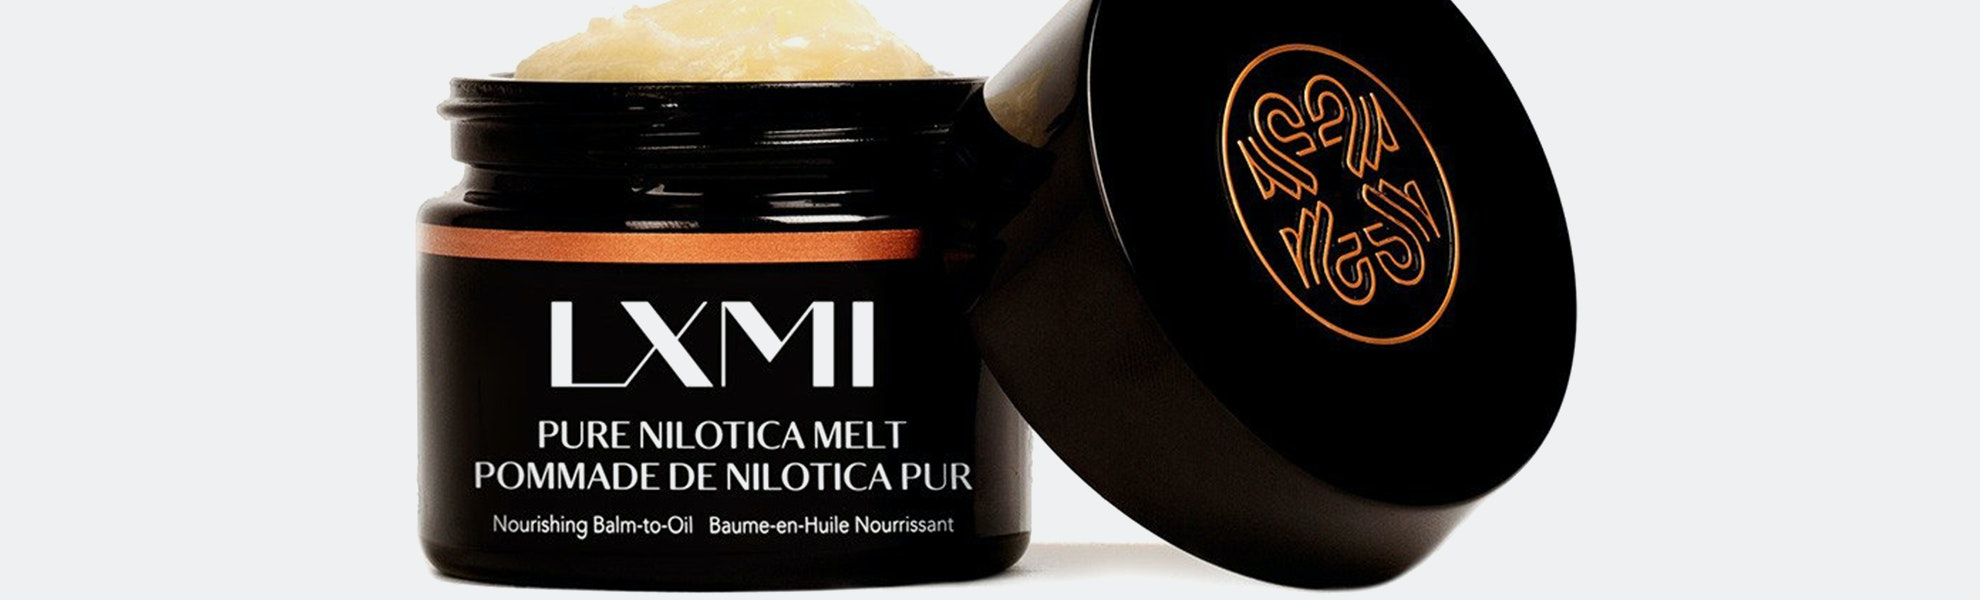 LXMI Pure Nilotica Melt Nourishing Balm-to-Oil